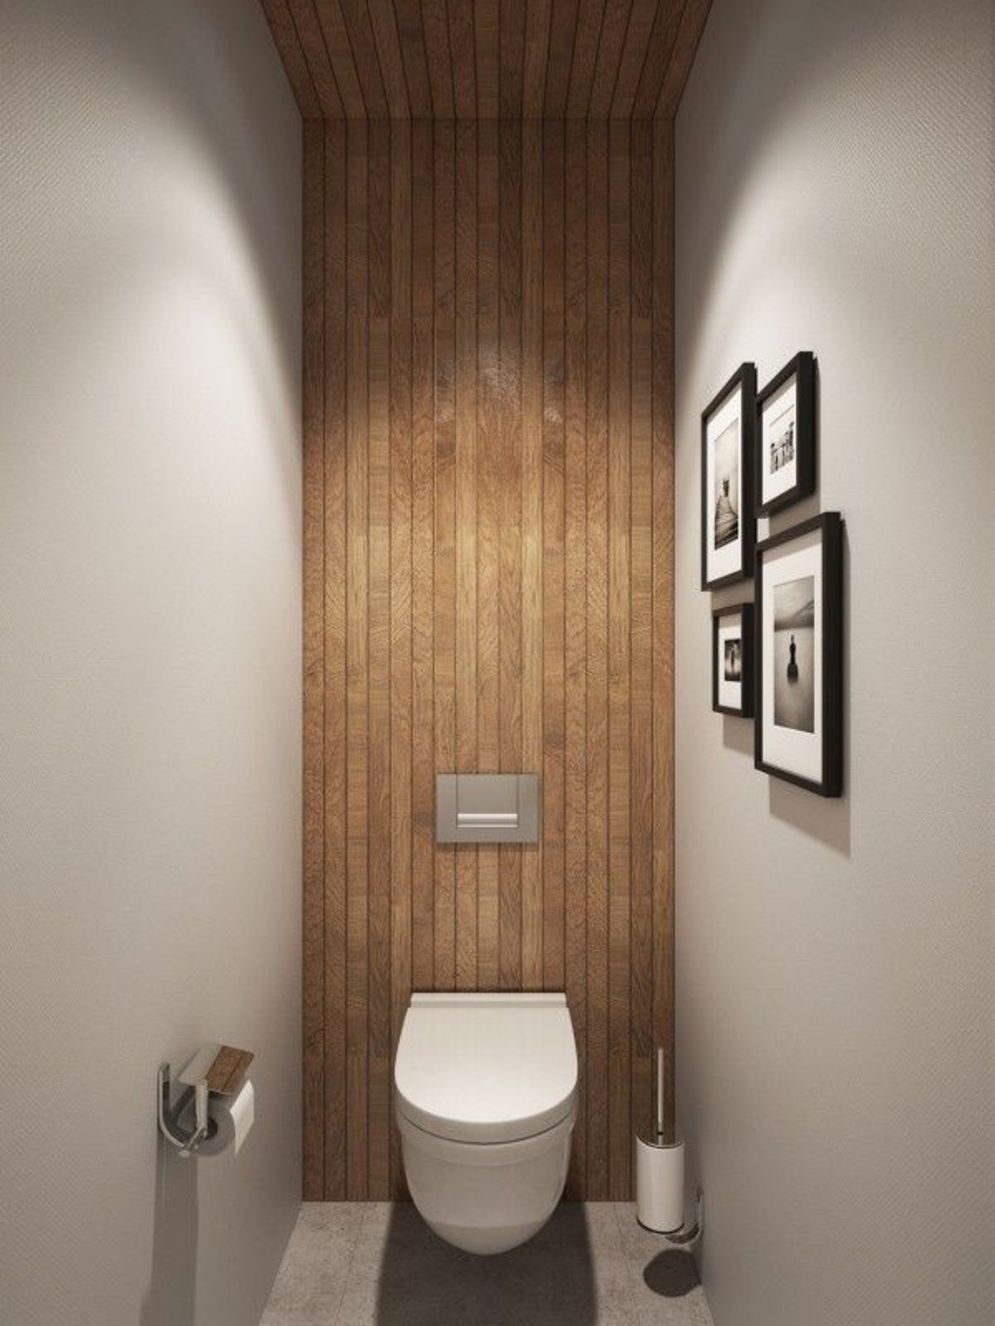 Timeless bathroom designs with wood accents enhancing more natural vibes Image 25